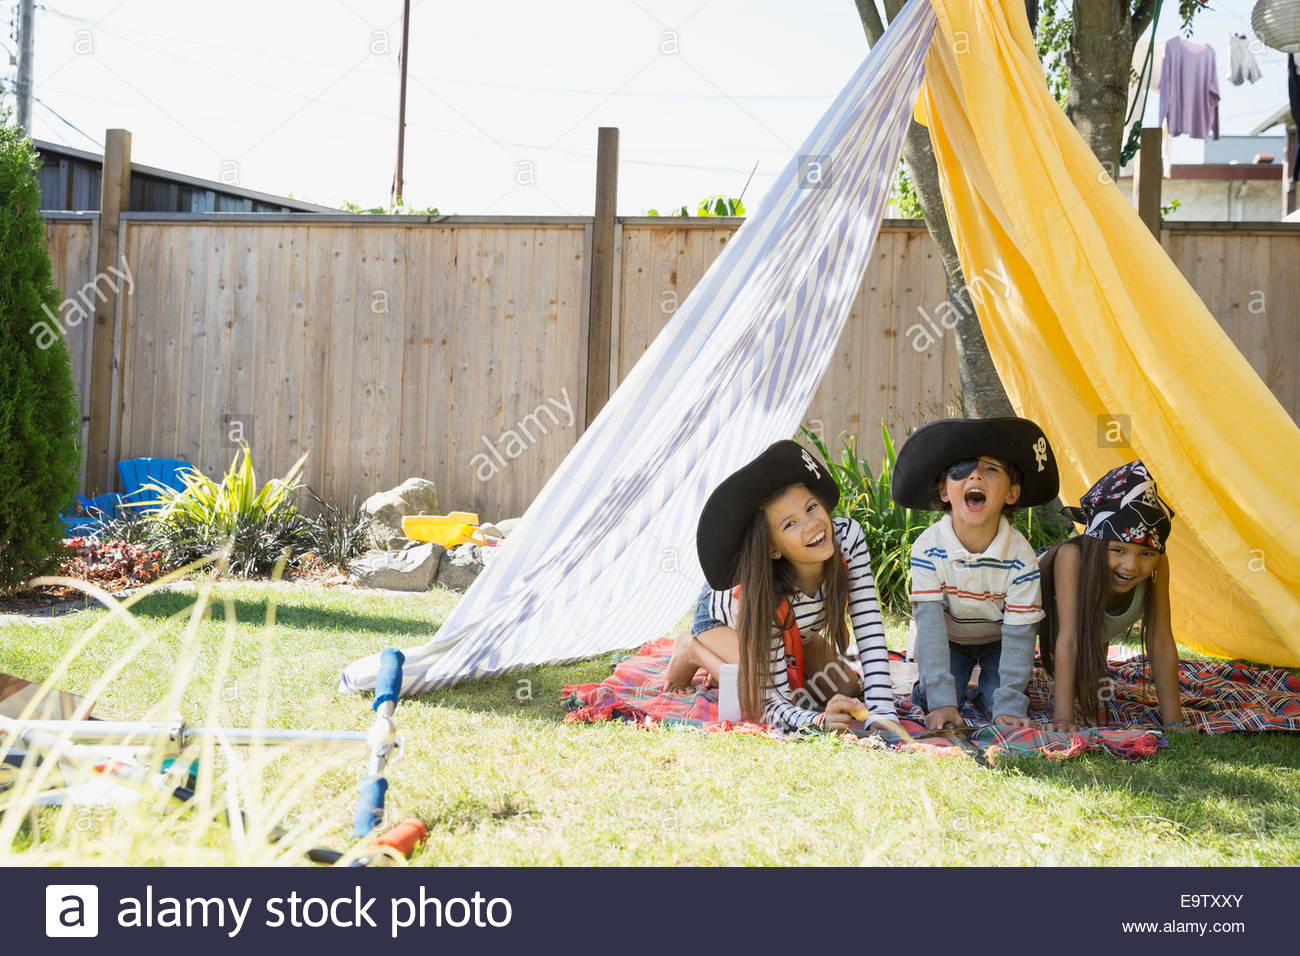 children playing pirates in backyard fort stock photo royalty